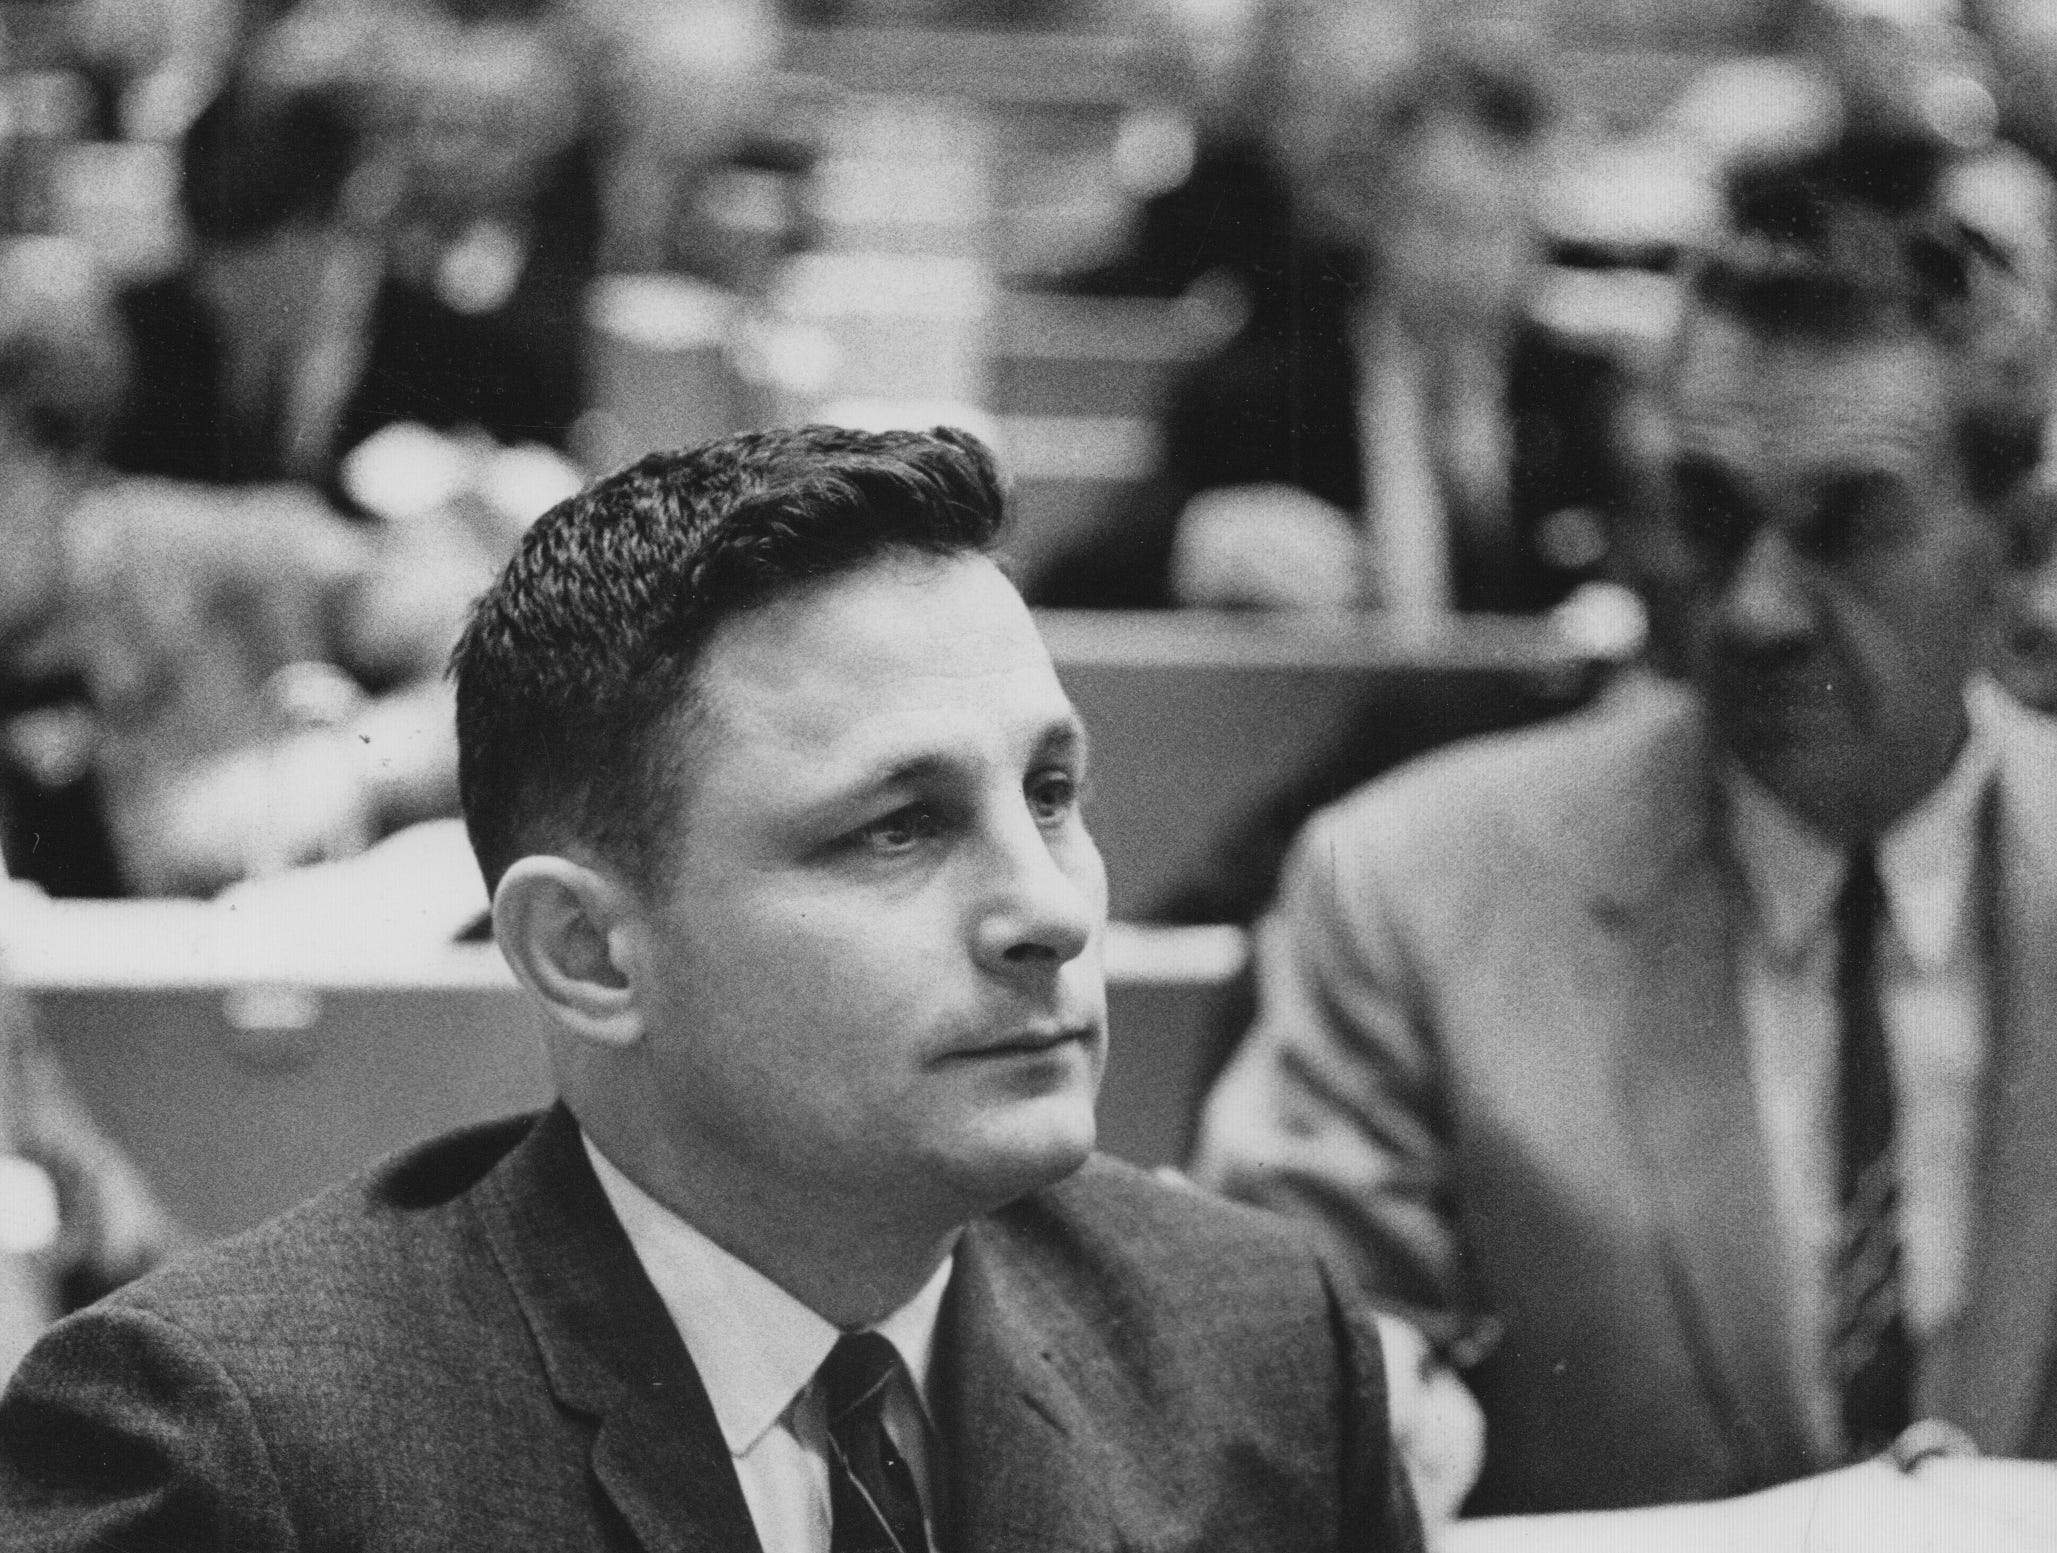 Birch Bayh in the Indiana House of Representatives in 1961.